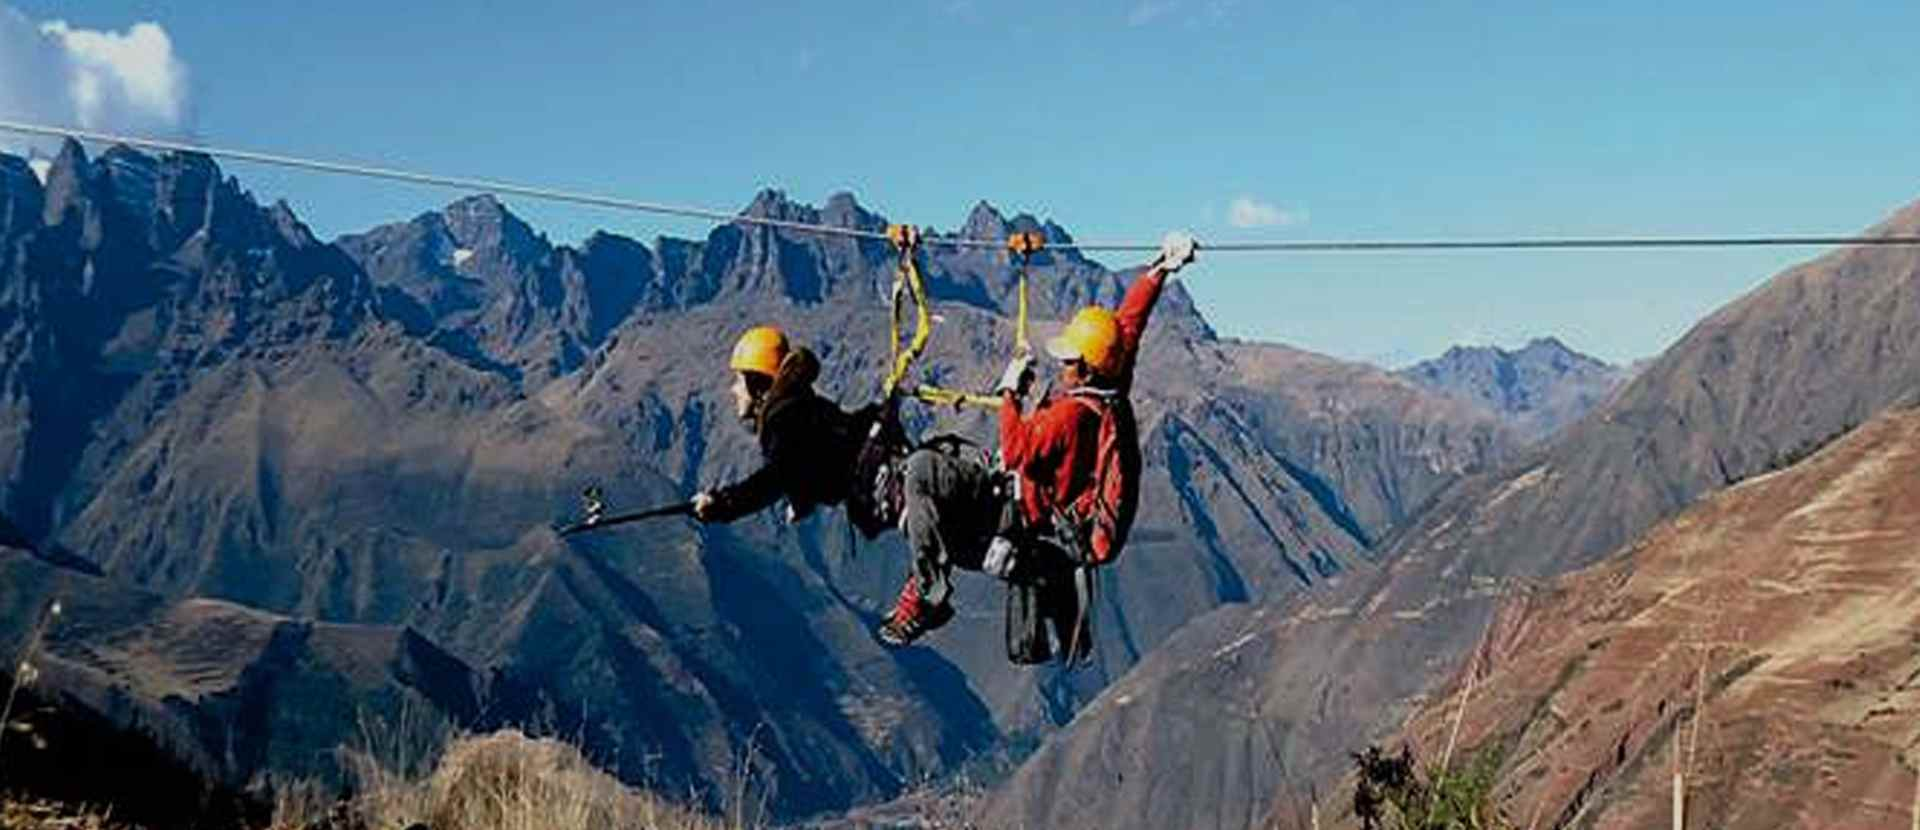 Inka Jungle Trek Zip Line Rafting 4 dias -      INKA JUNGLE TREKS